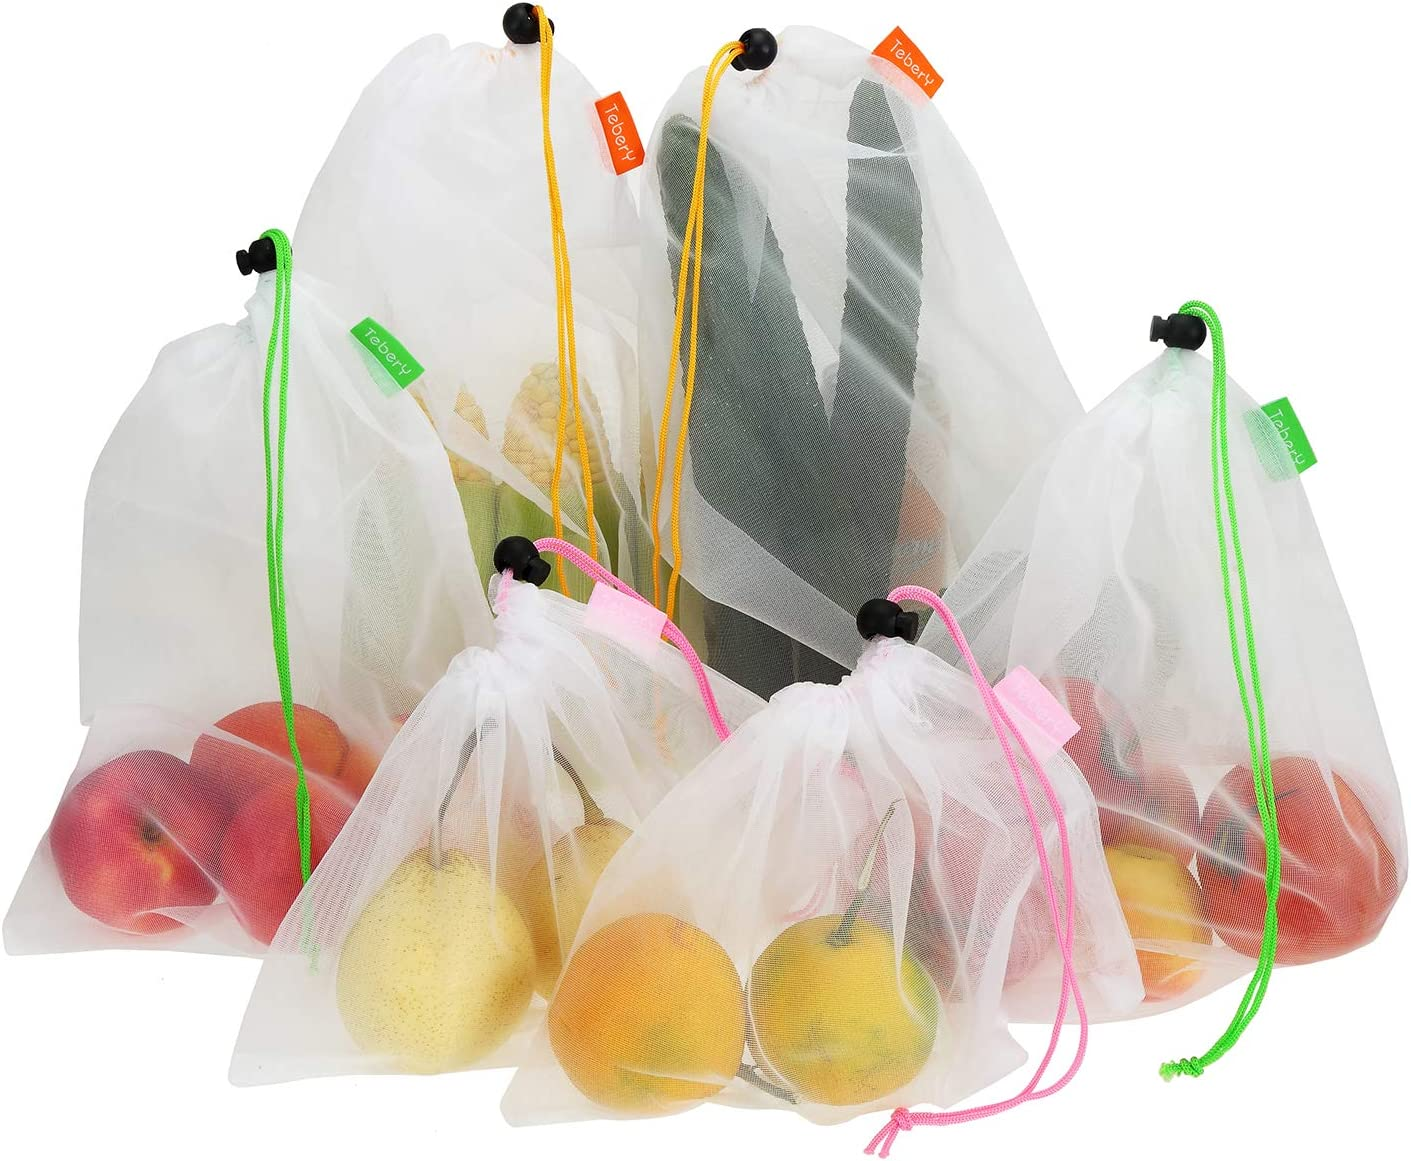 Tebery 15 Pack Washable and Reusable Produce Bags Transparent Lightweight Strong Mesh Bag for Shopping, Transporting and Storing Fruits and Veggies - 3 Sizes